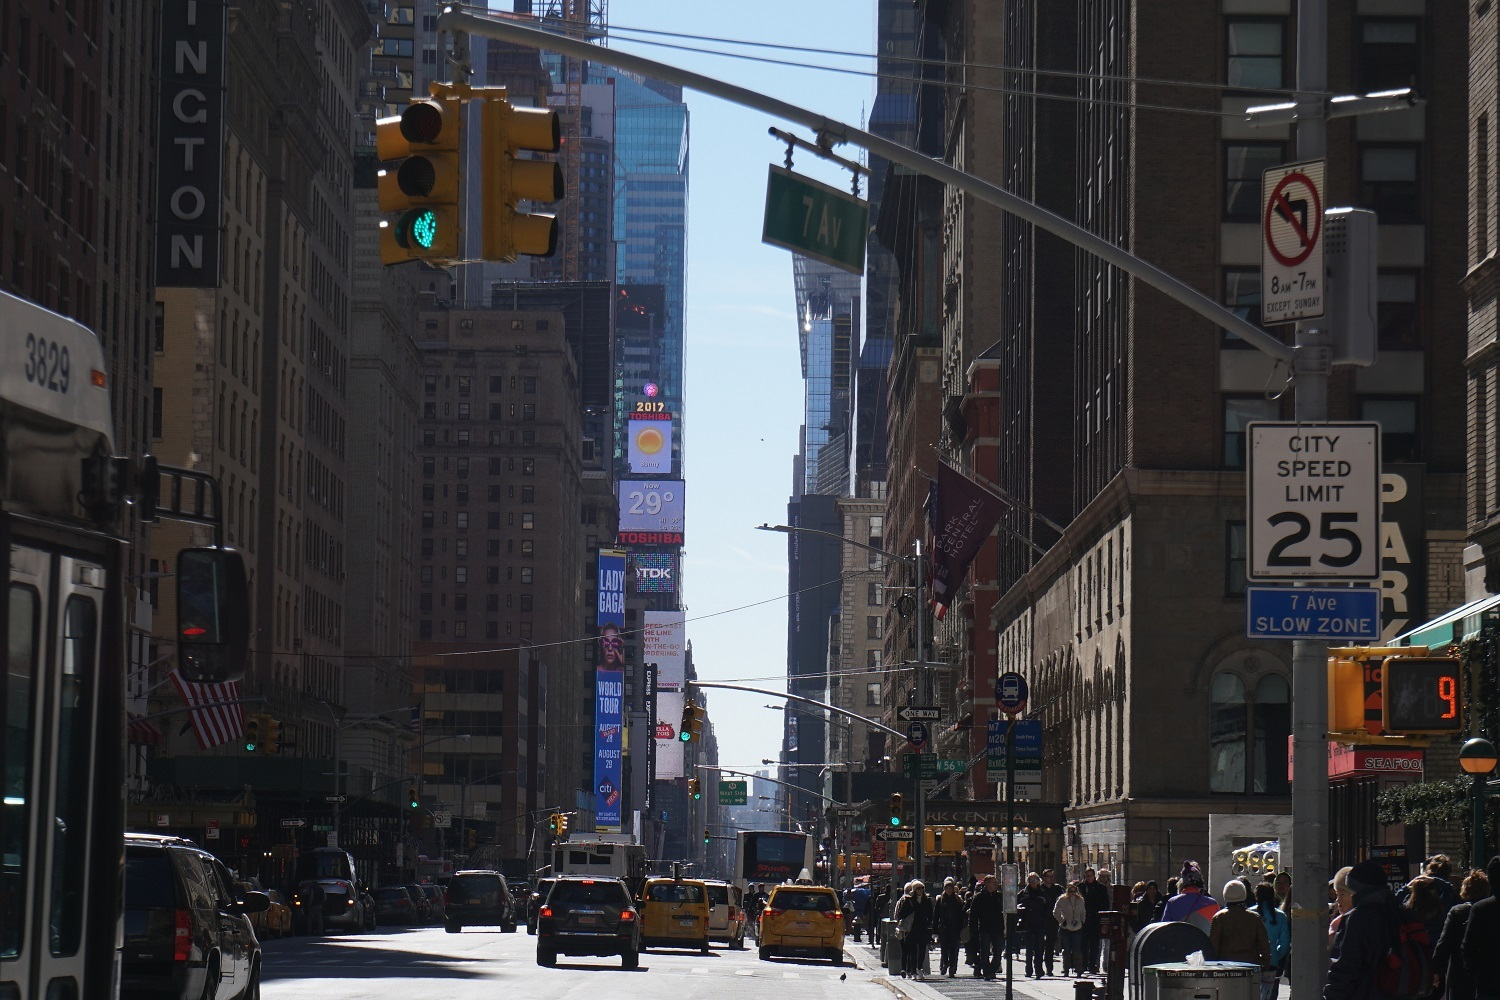 Close to Times Square, Restaurants, Theatres